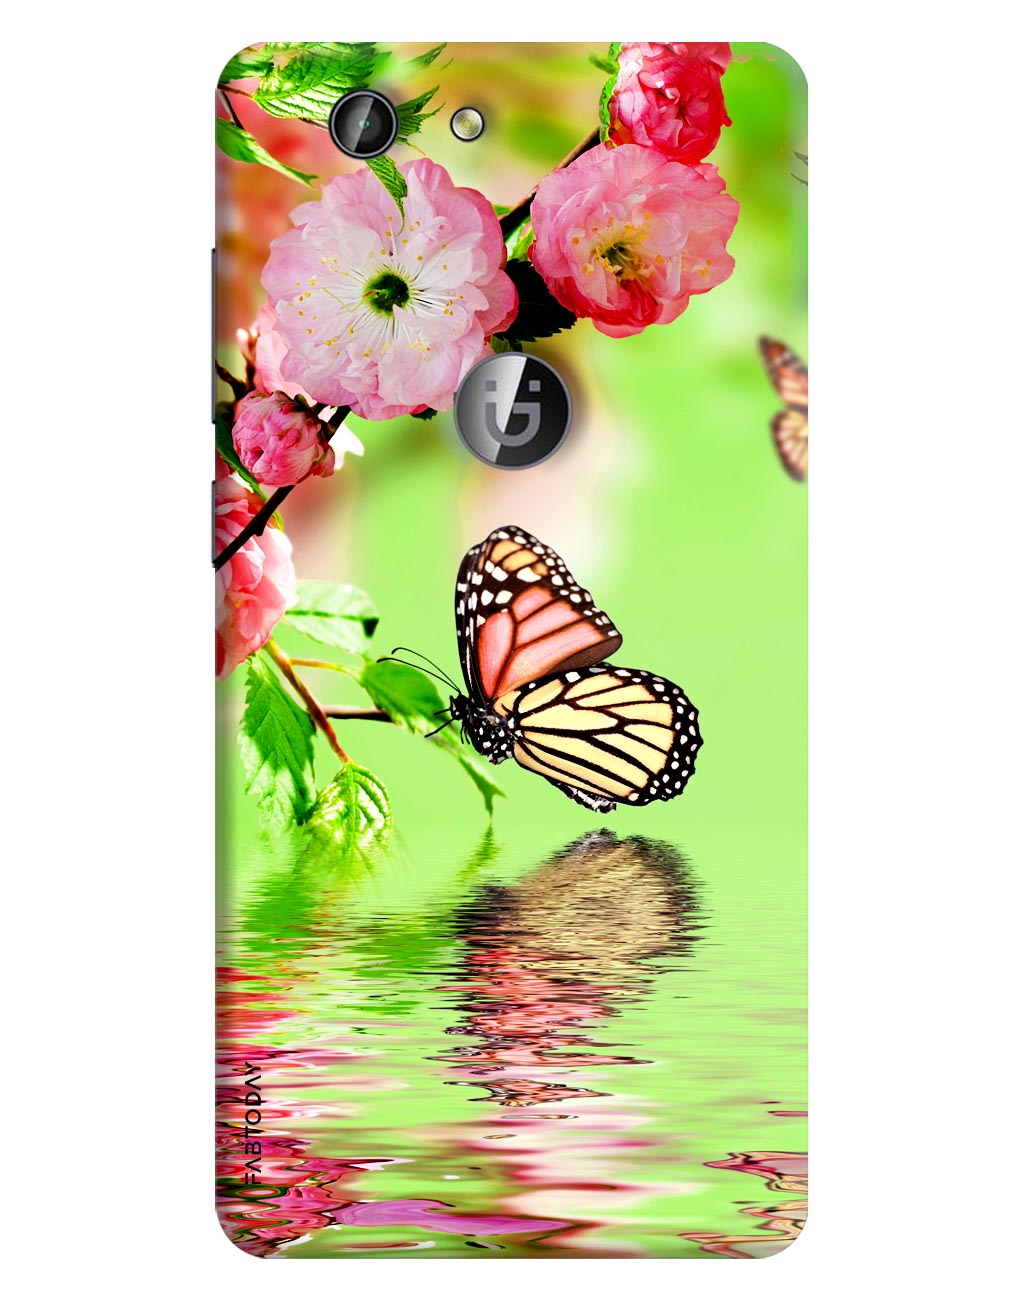 Butterfly Back Cover for Gionee F103 Pro